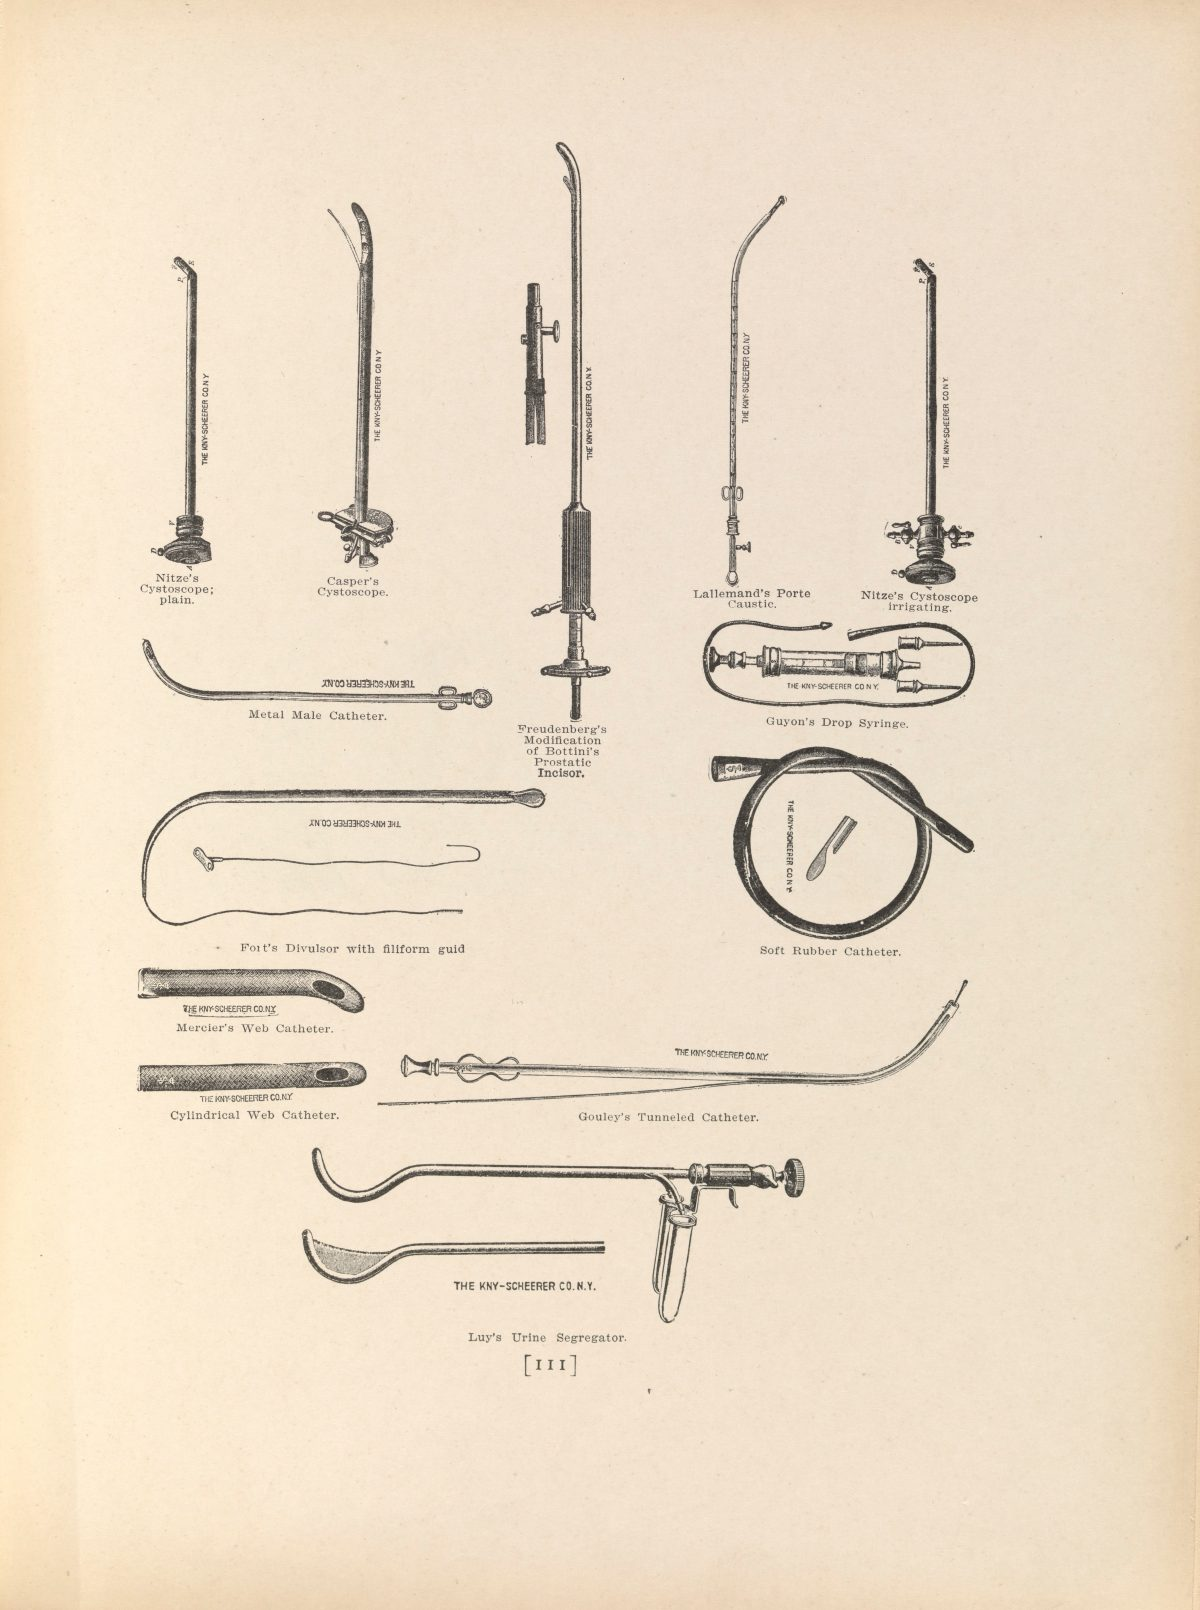 Plate XXXIV. Surgical instruments used for external urethrotomy in prostatectomy (removal of part of the prostate gland).